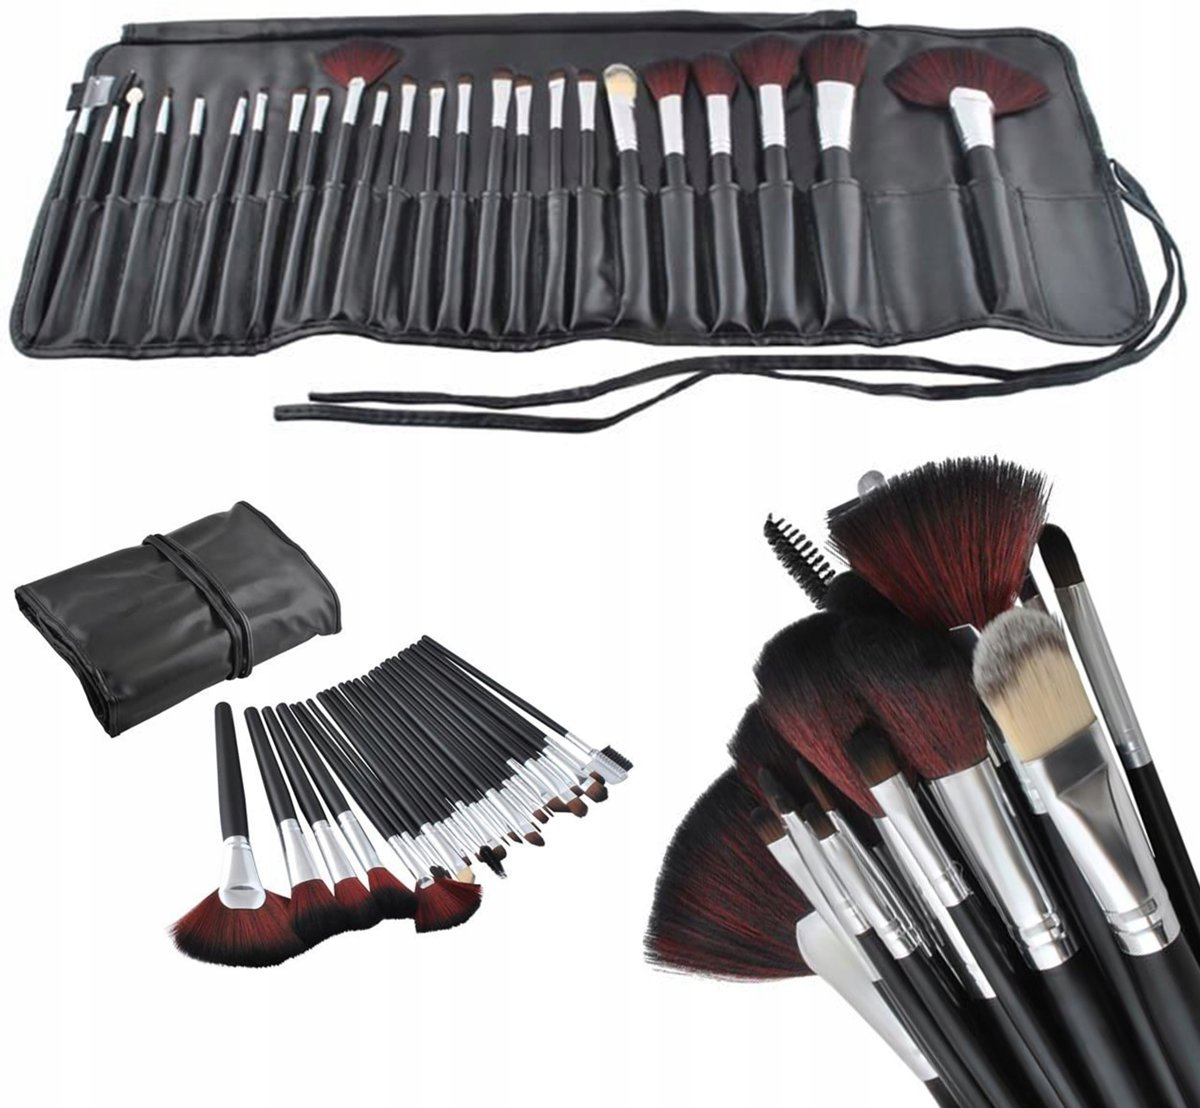 24 Delige Professionele Make-Up Kwasten Set - Kunstleder Etui - Oogmake-up,Visagie, Concealer, en Foundation Penselen.